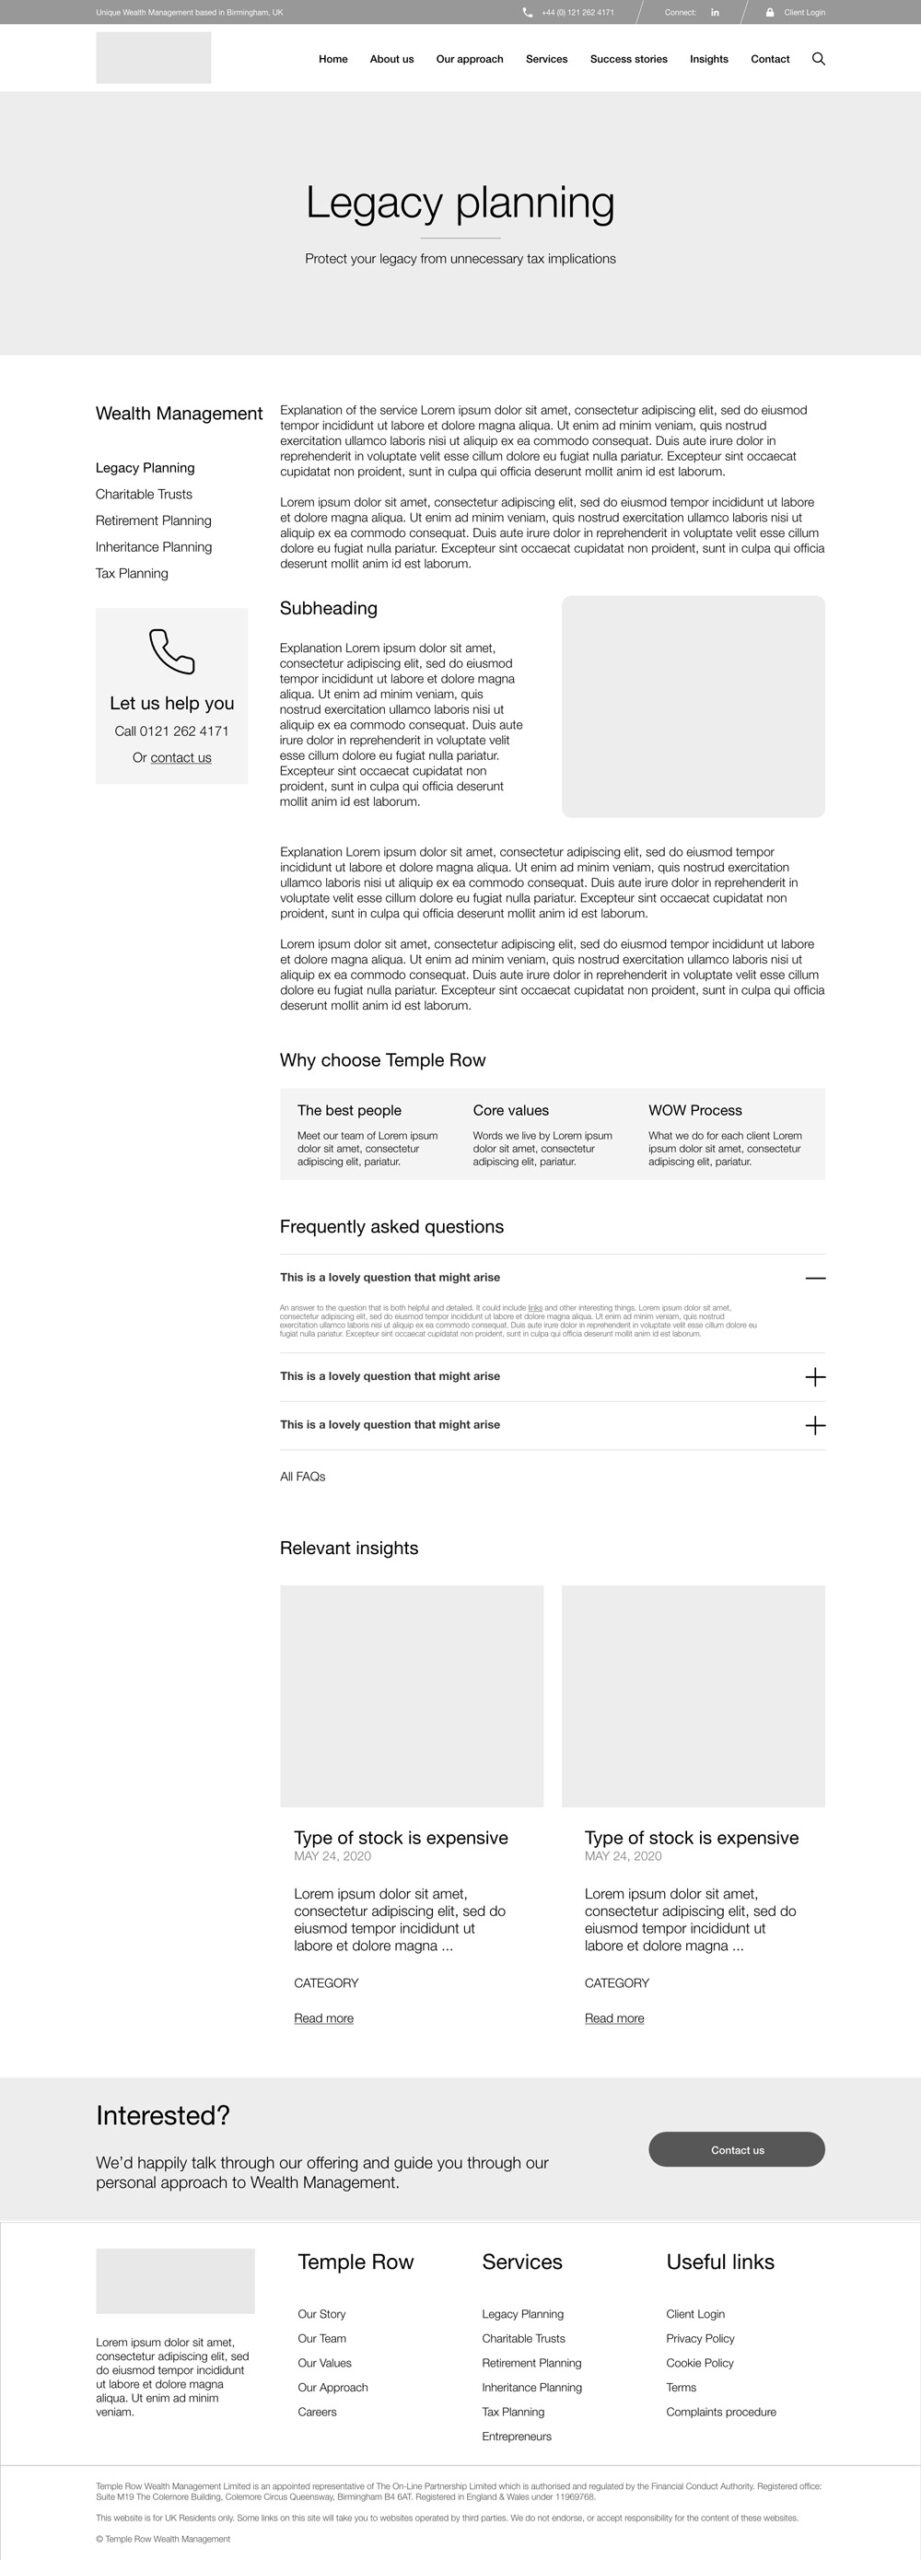 noble-digital-casestudy-temple-row-wealth-management-wireframe-14-service